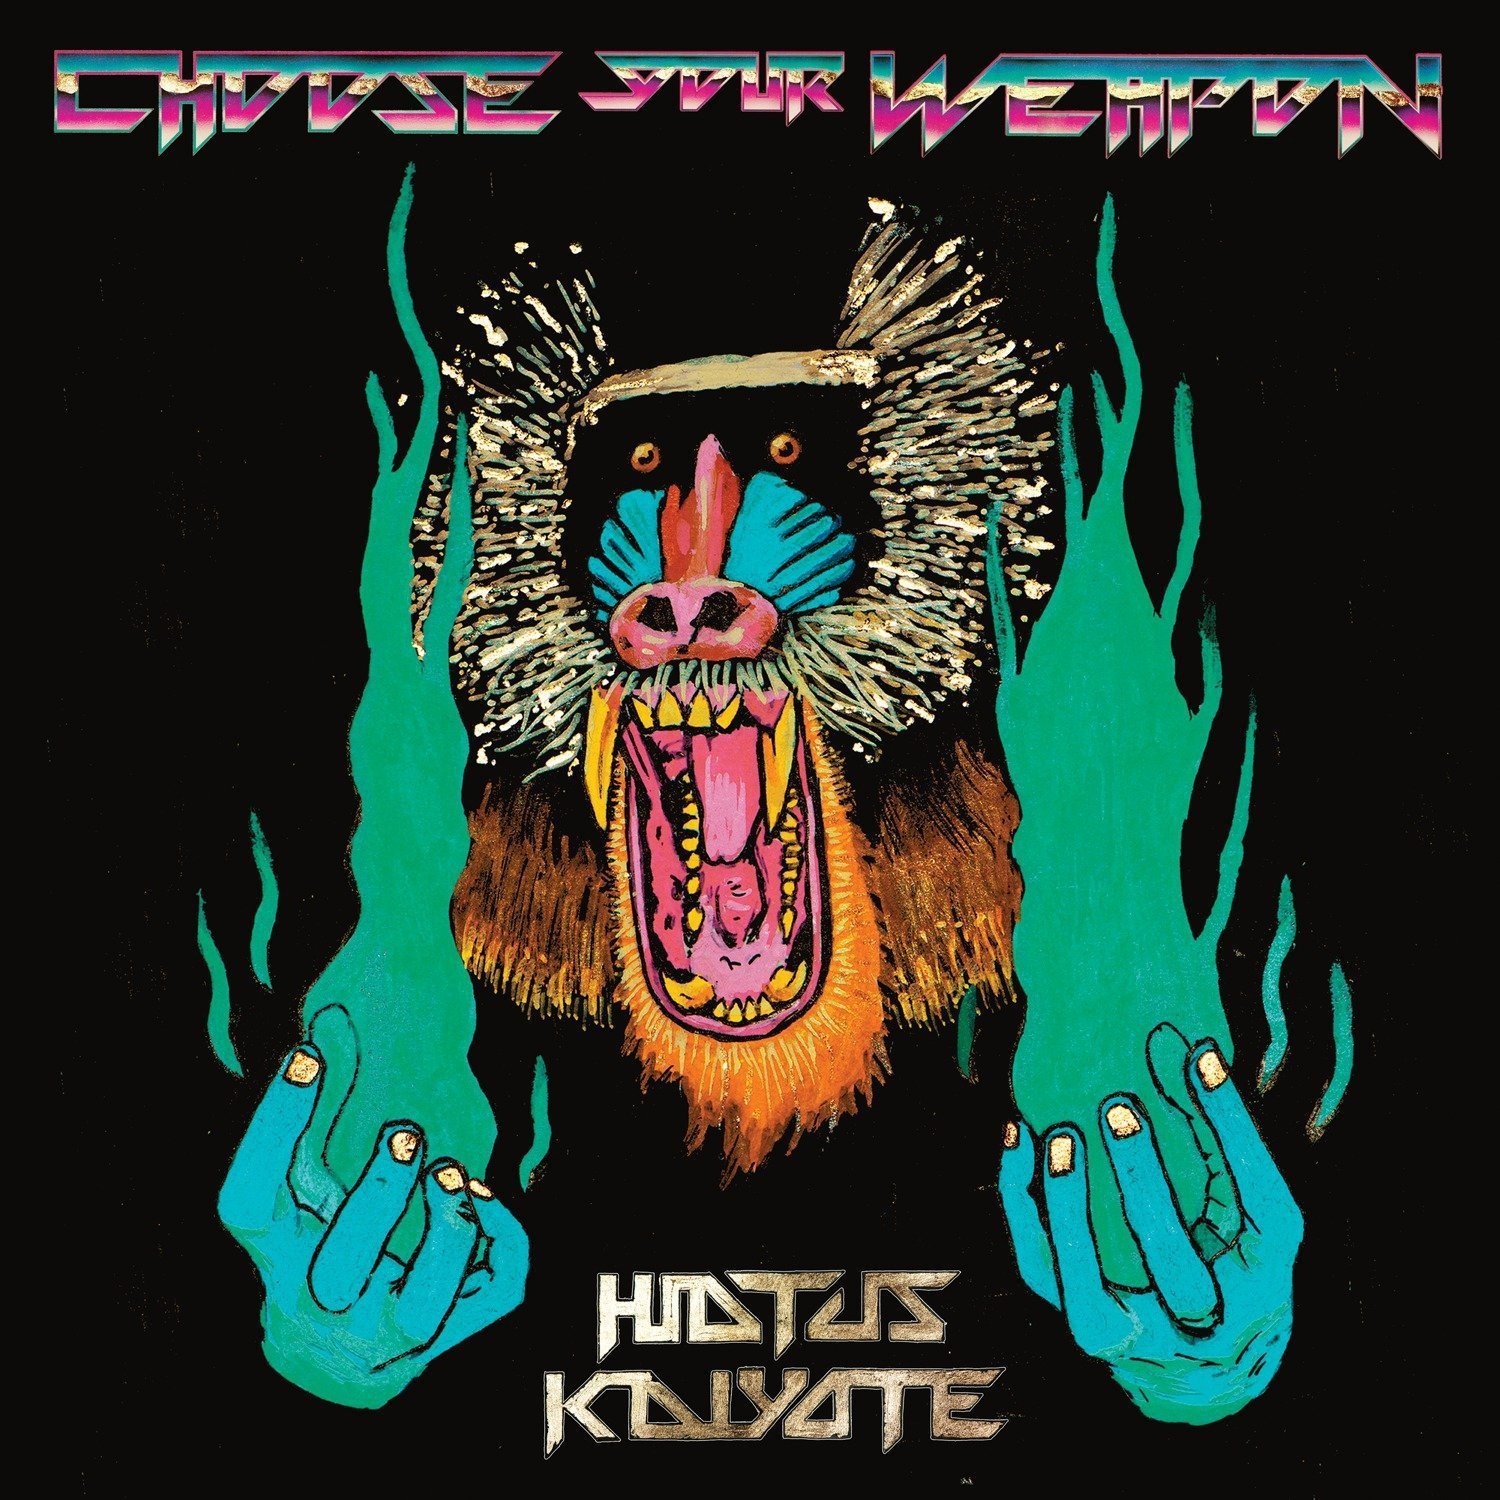 hiatus kaiyote album cover